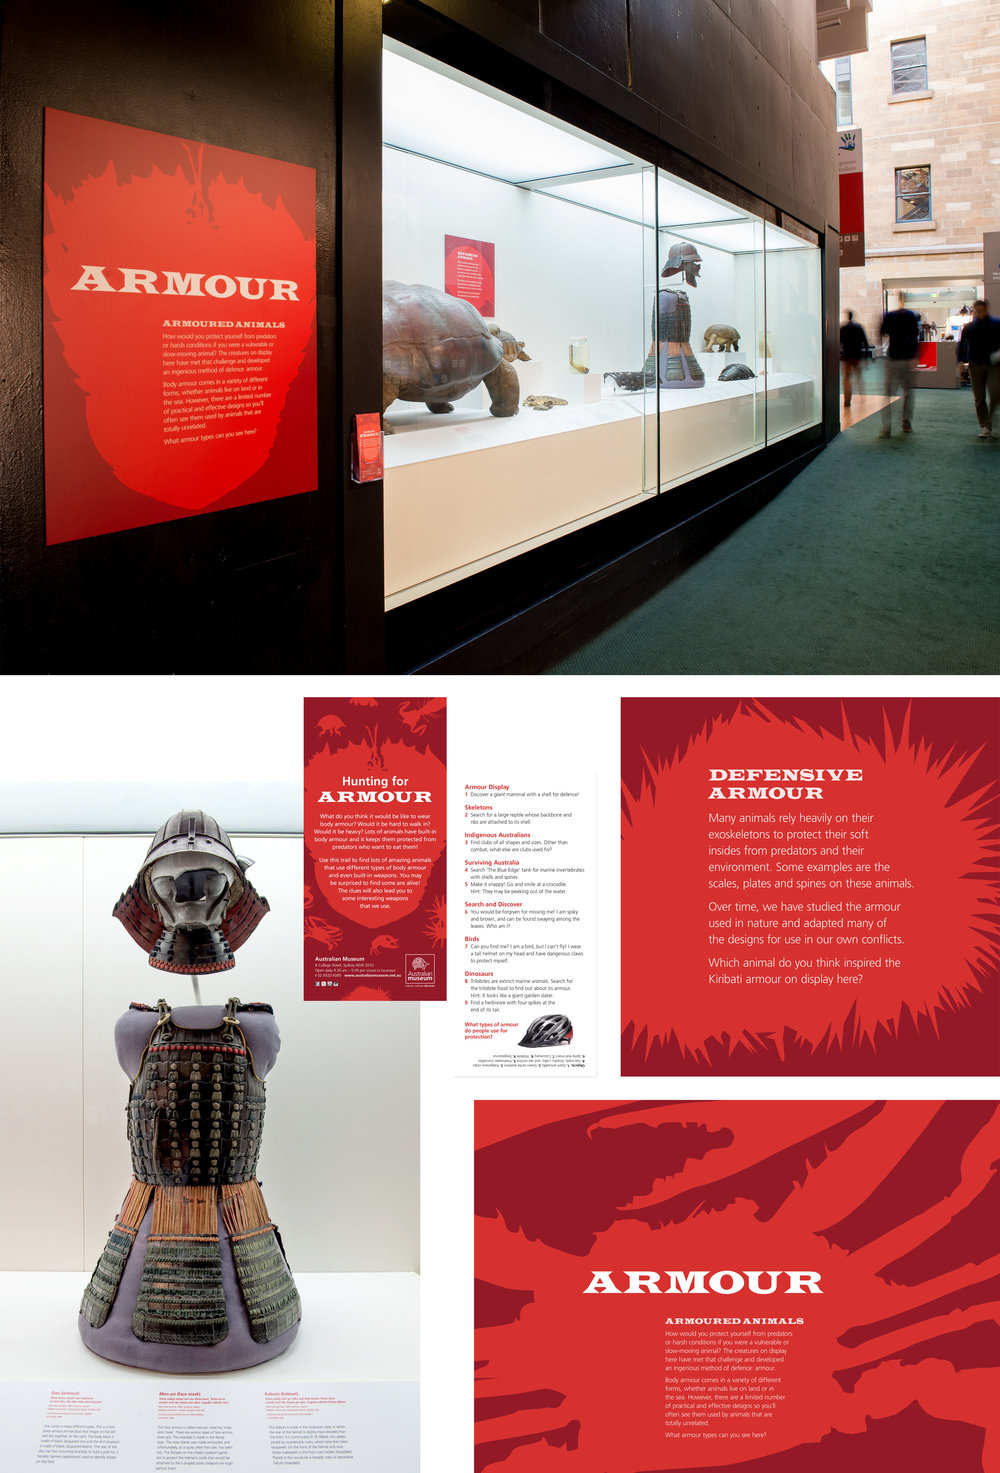 client Australian Museum   project Armour exhibition | hallway display and educational collateral